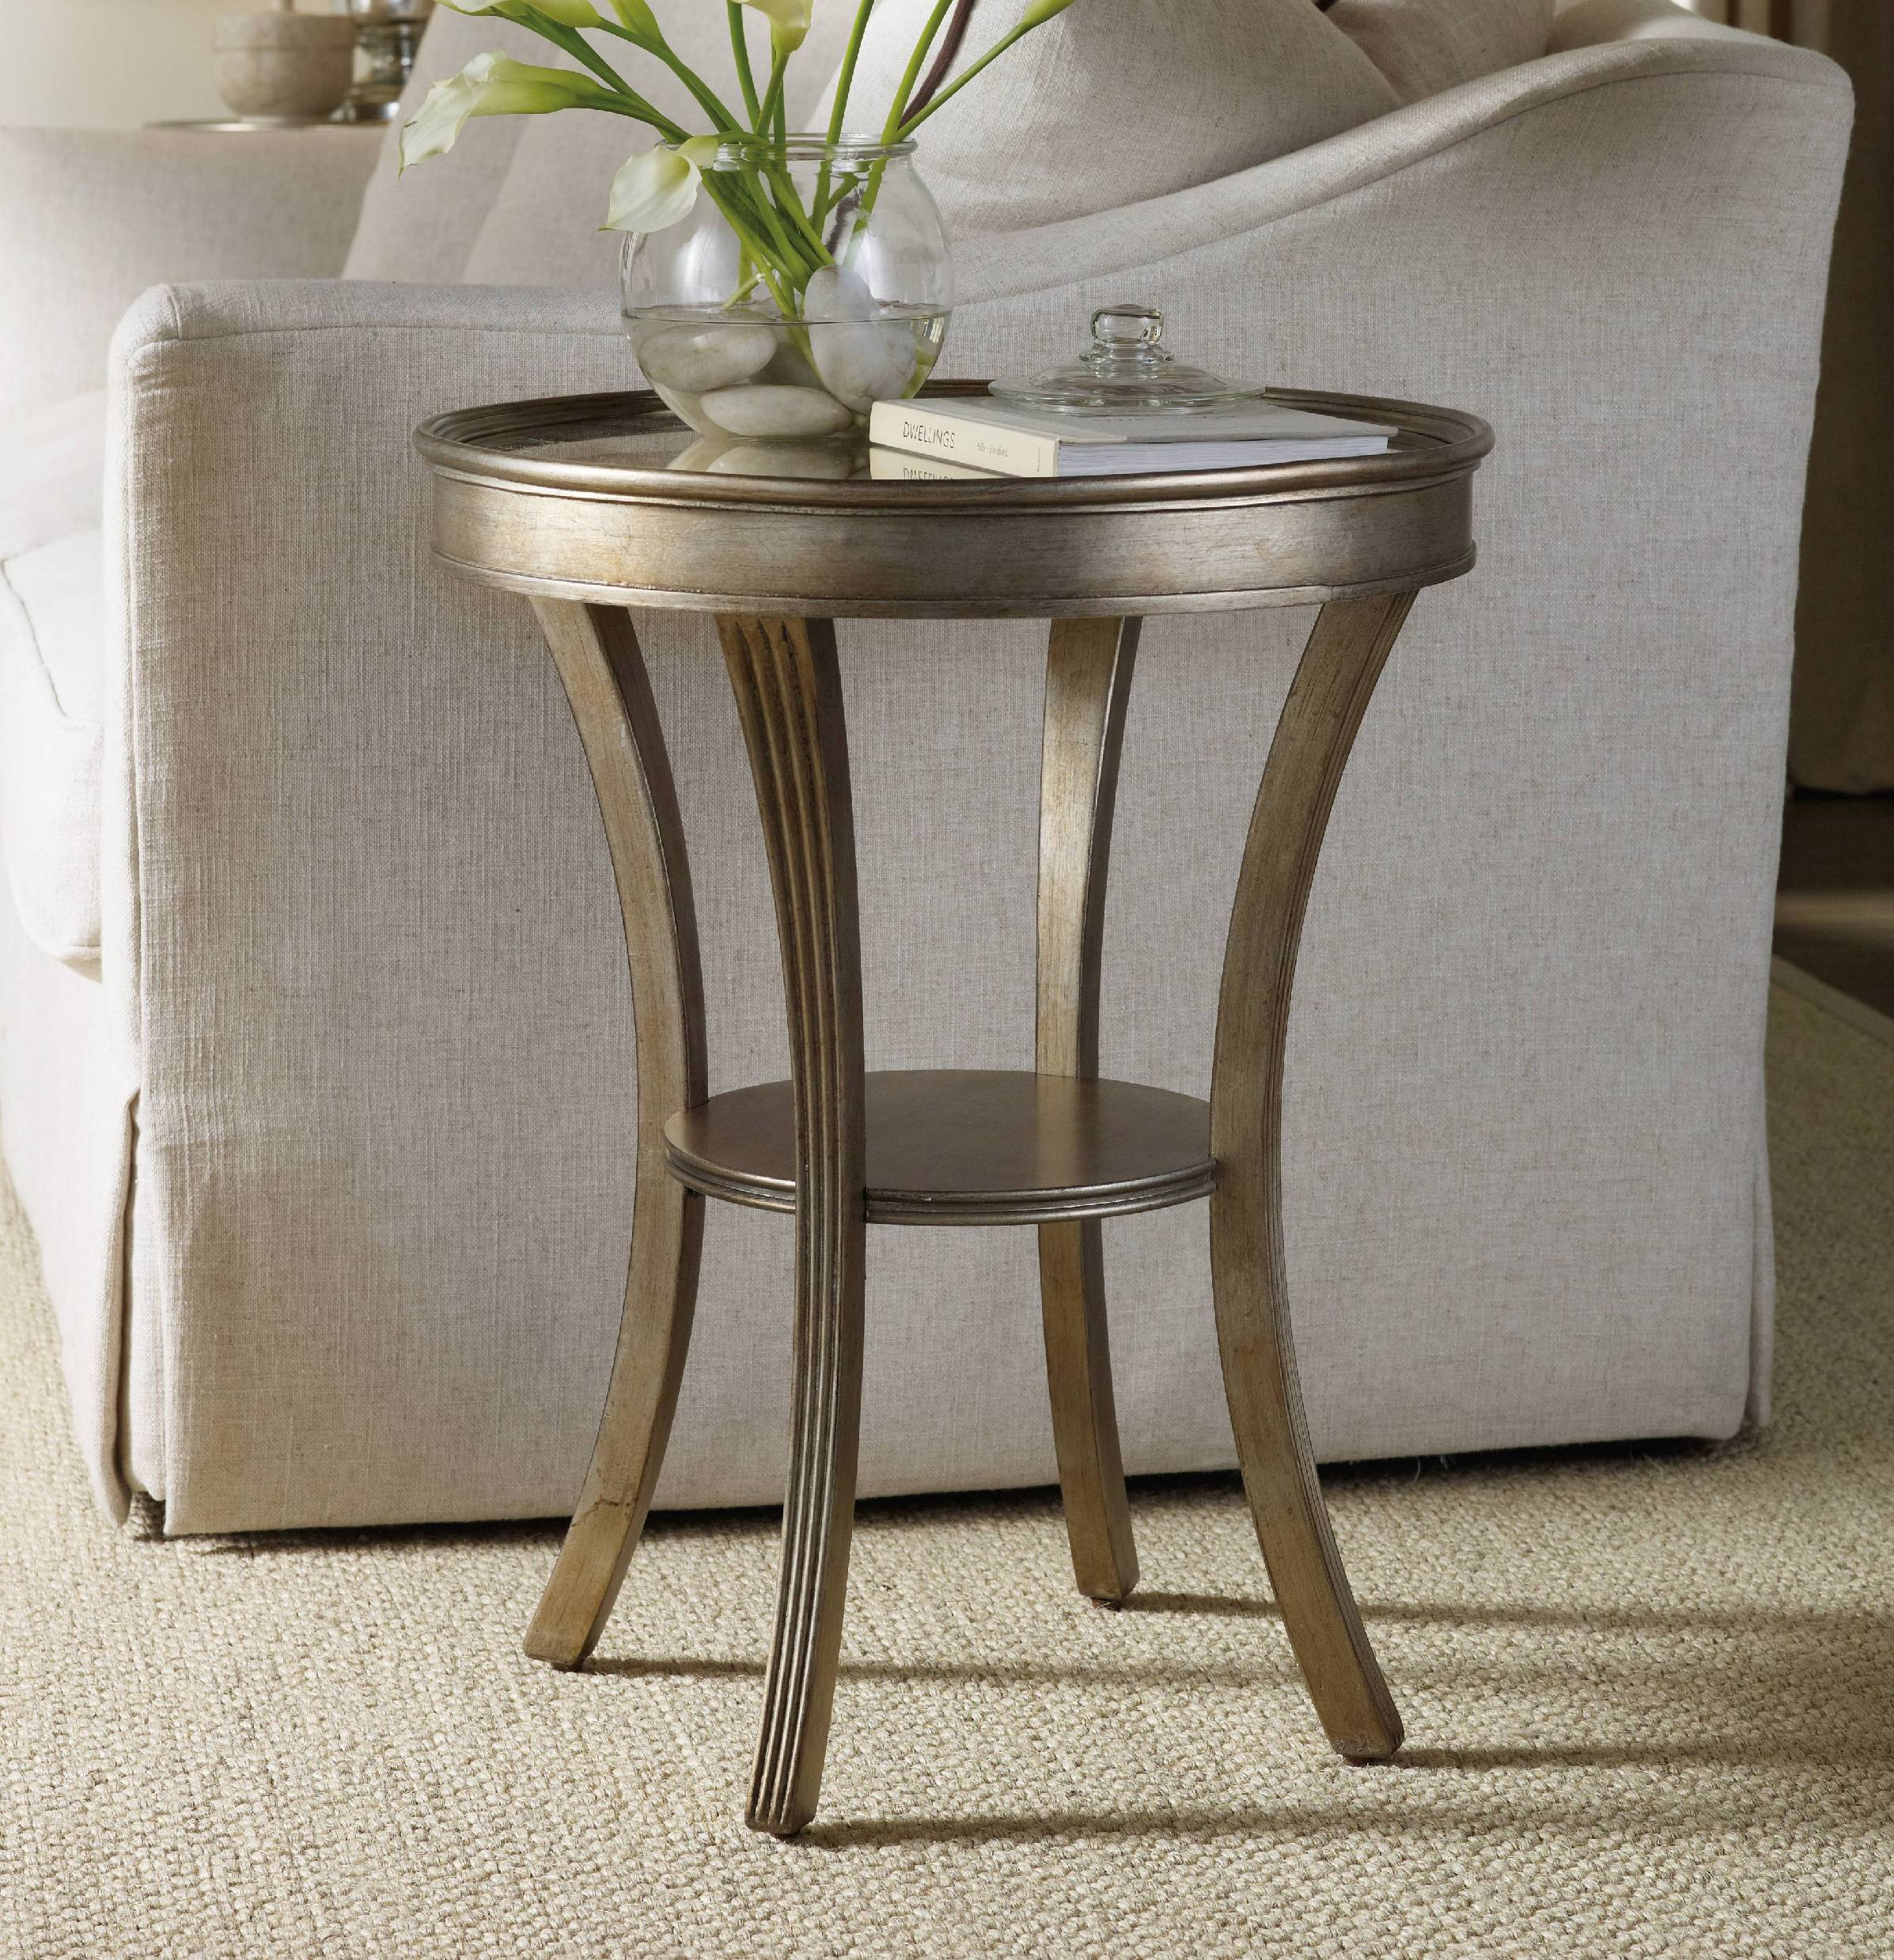 mirrored pyramid living room accent side end table ideas unique perfect for small coffee christmas decor diy pipe leg hanover outdoor furniture breakfast nook set real leather